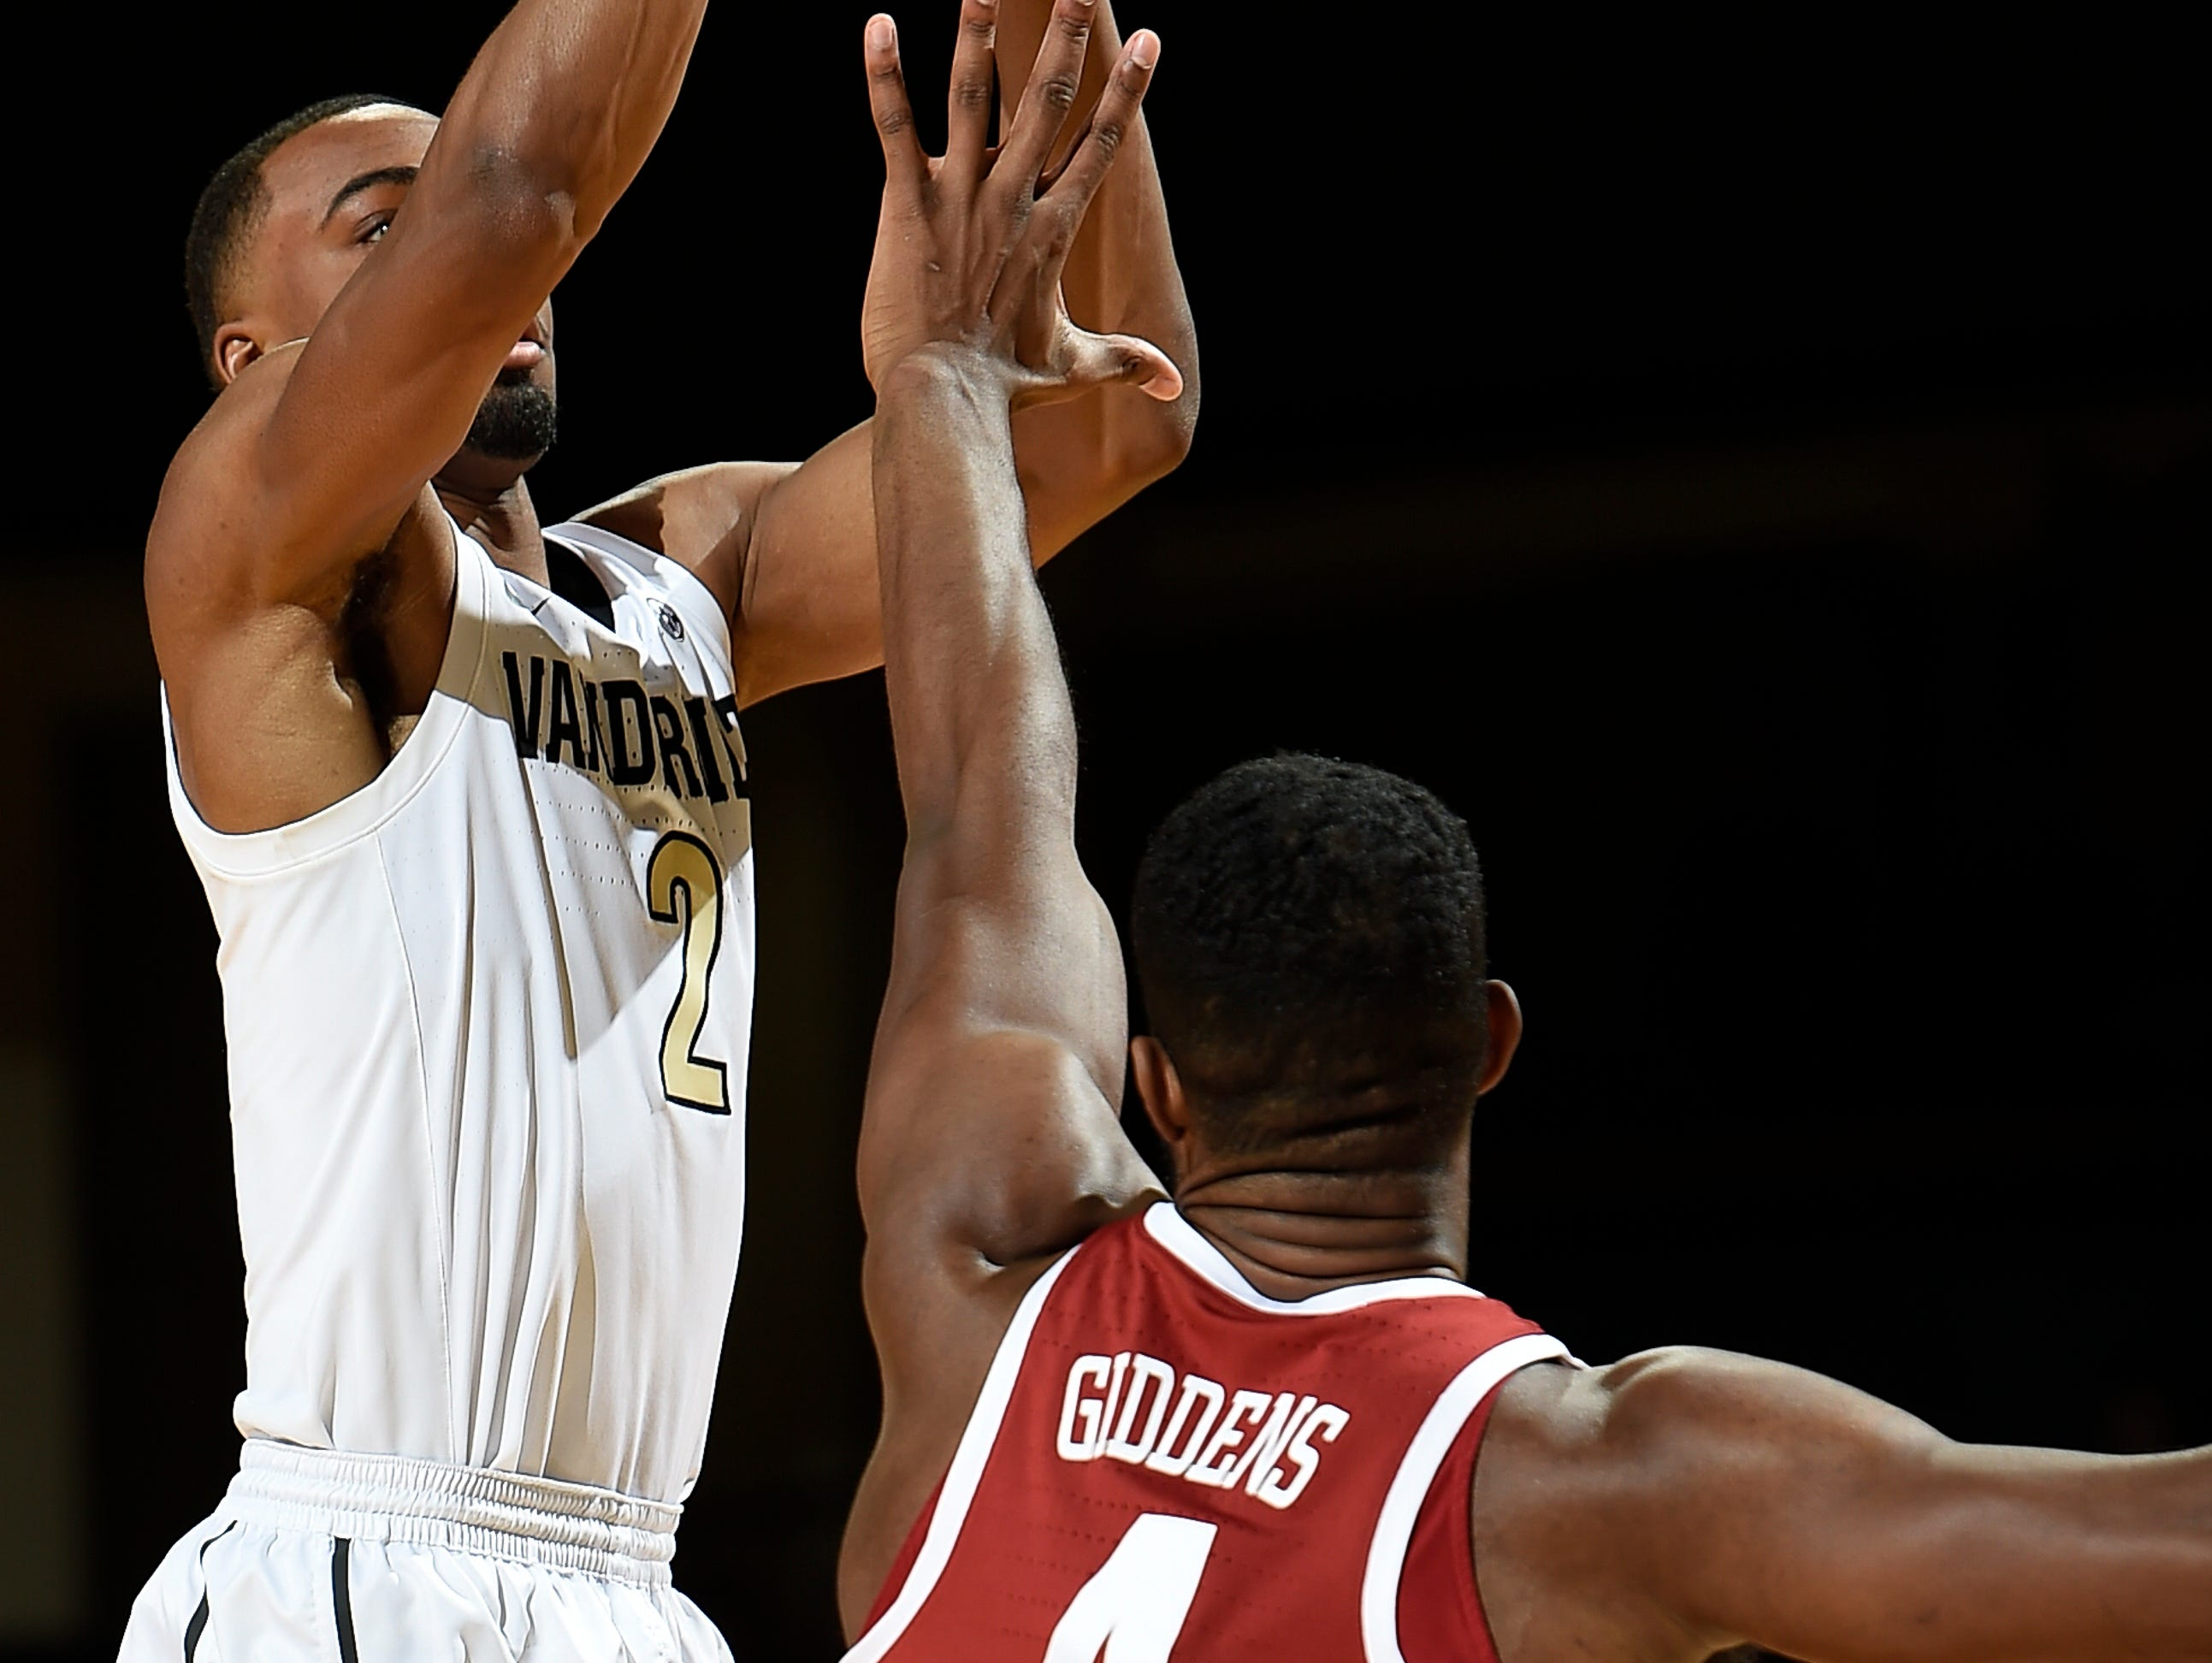 Vanderbilt guard Joe Toye (2) shoots over Alabama forward Daniel Giddens (4) during the first half at Memorial Gym Saturday Feb. 9, 2019 in Nashville, Tenn.